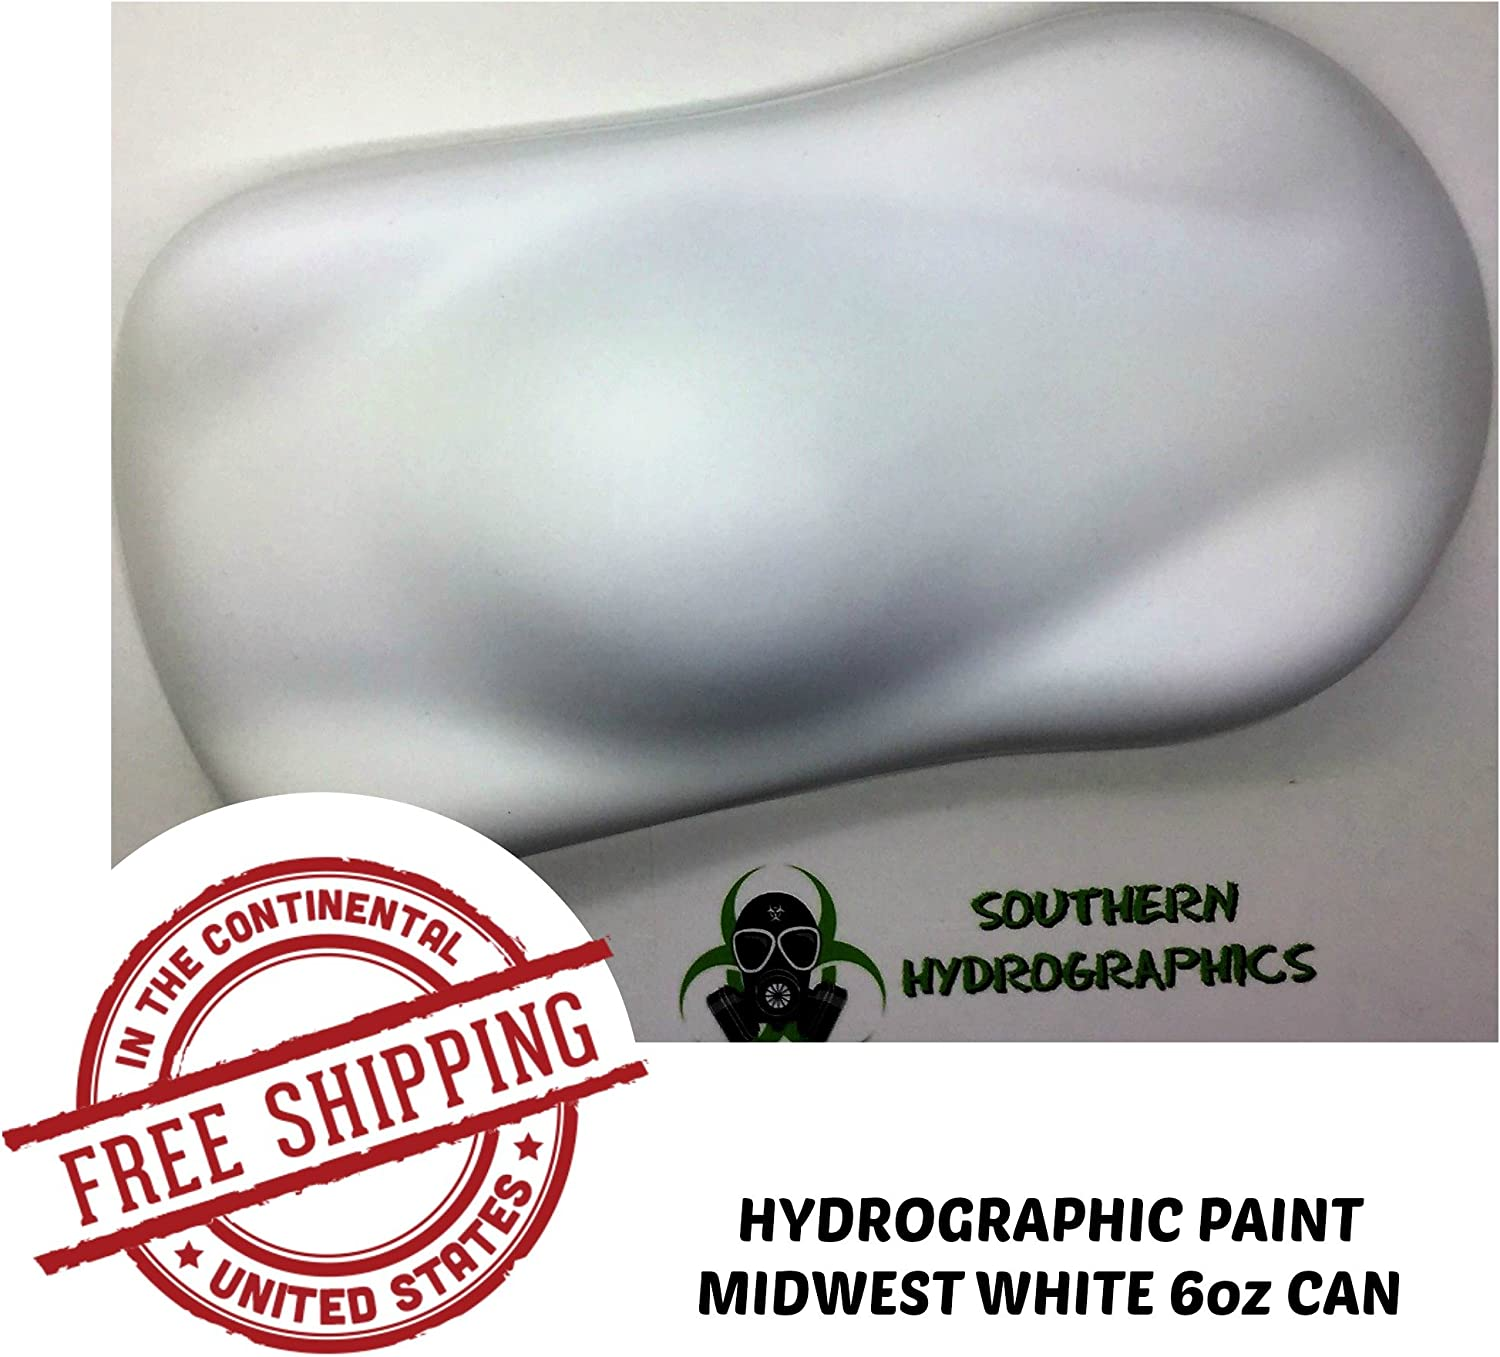 Hydro Dip Film Hydrographic Film Complete Dip Kit Hydro Dipping Hydro Dip Kit Hydrographics Film New Coke Silver /& High Gloss Clear Water Transfer Printing Cosmic Galaxy Dip Kit